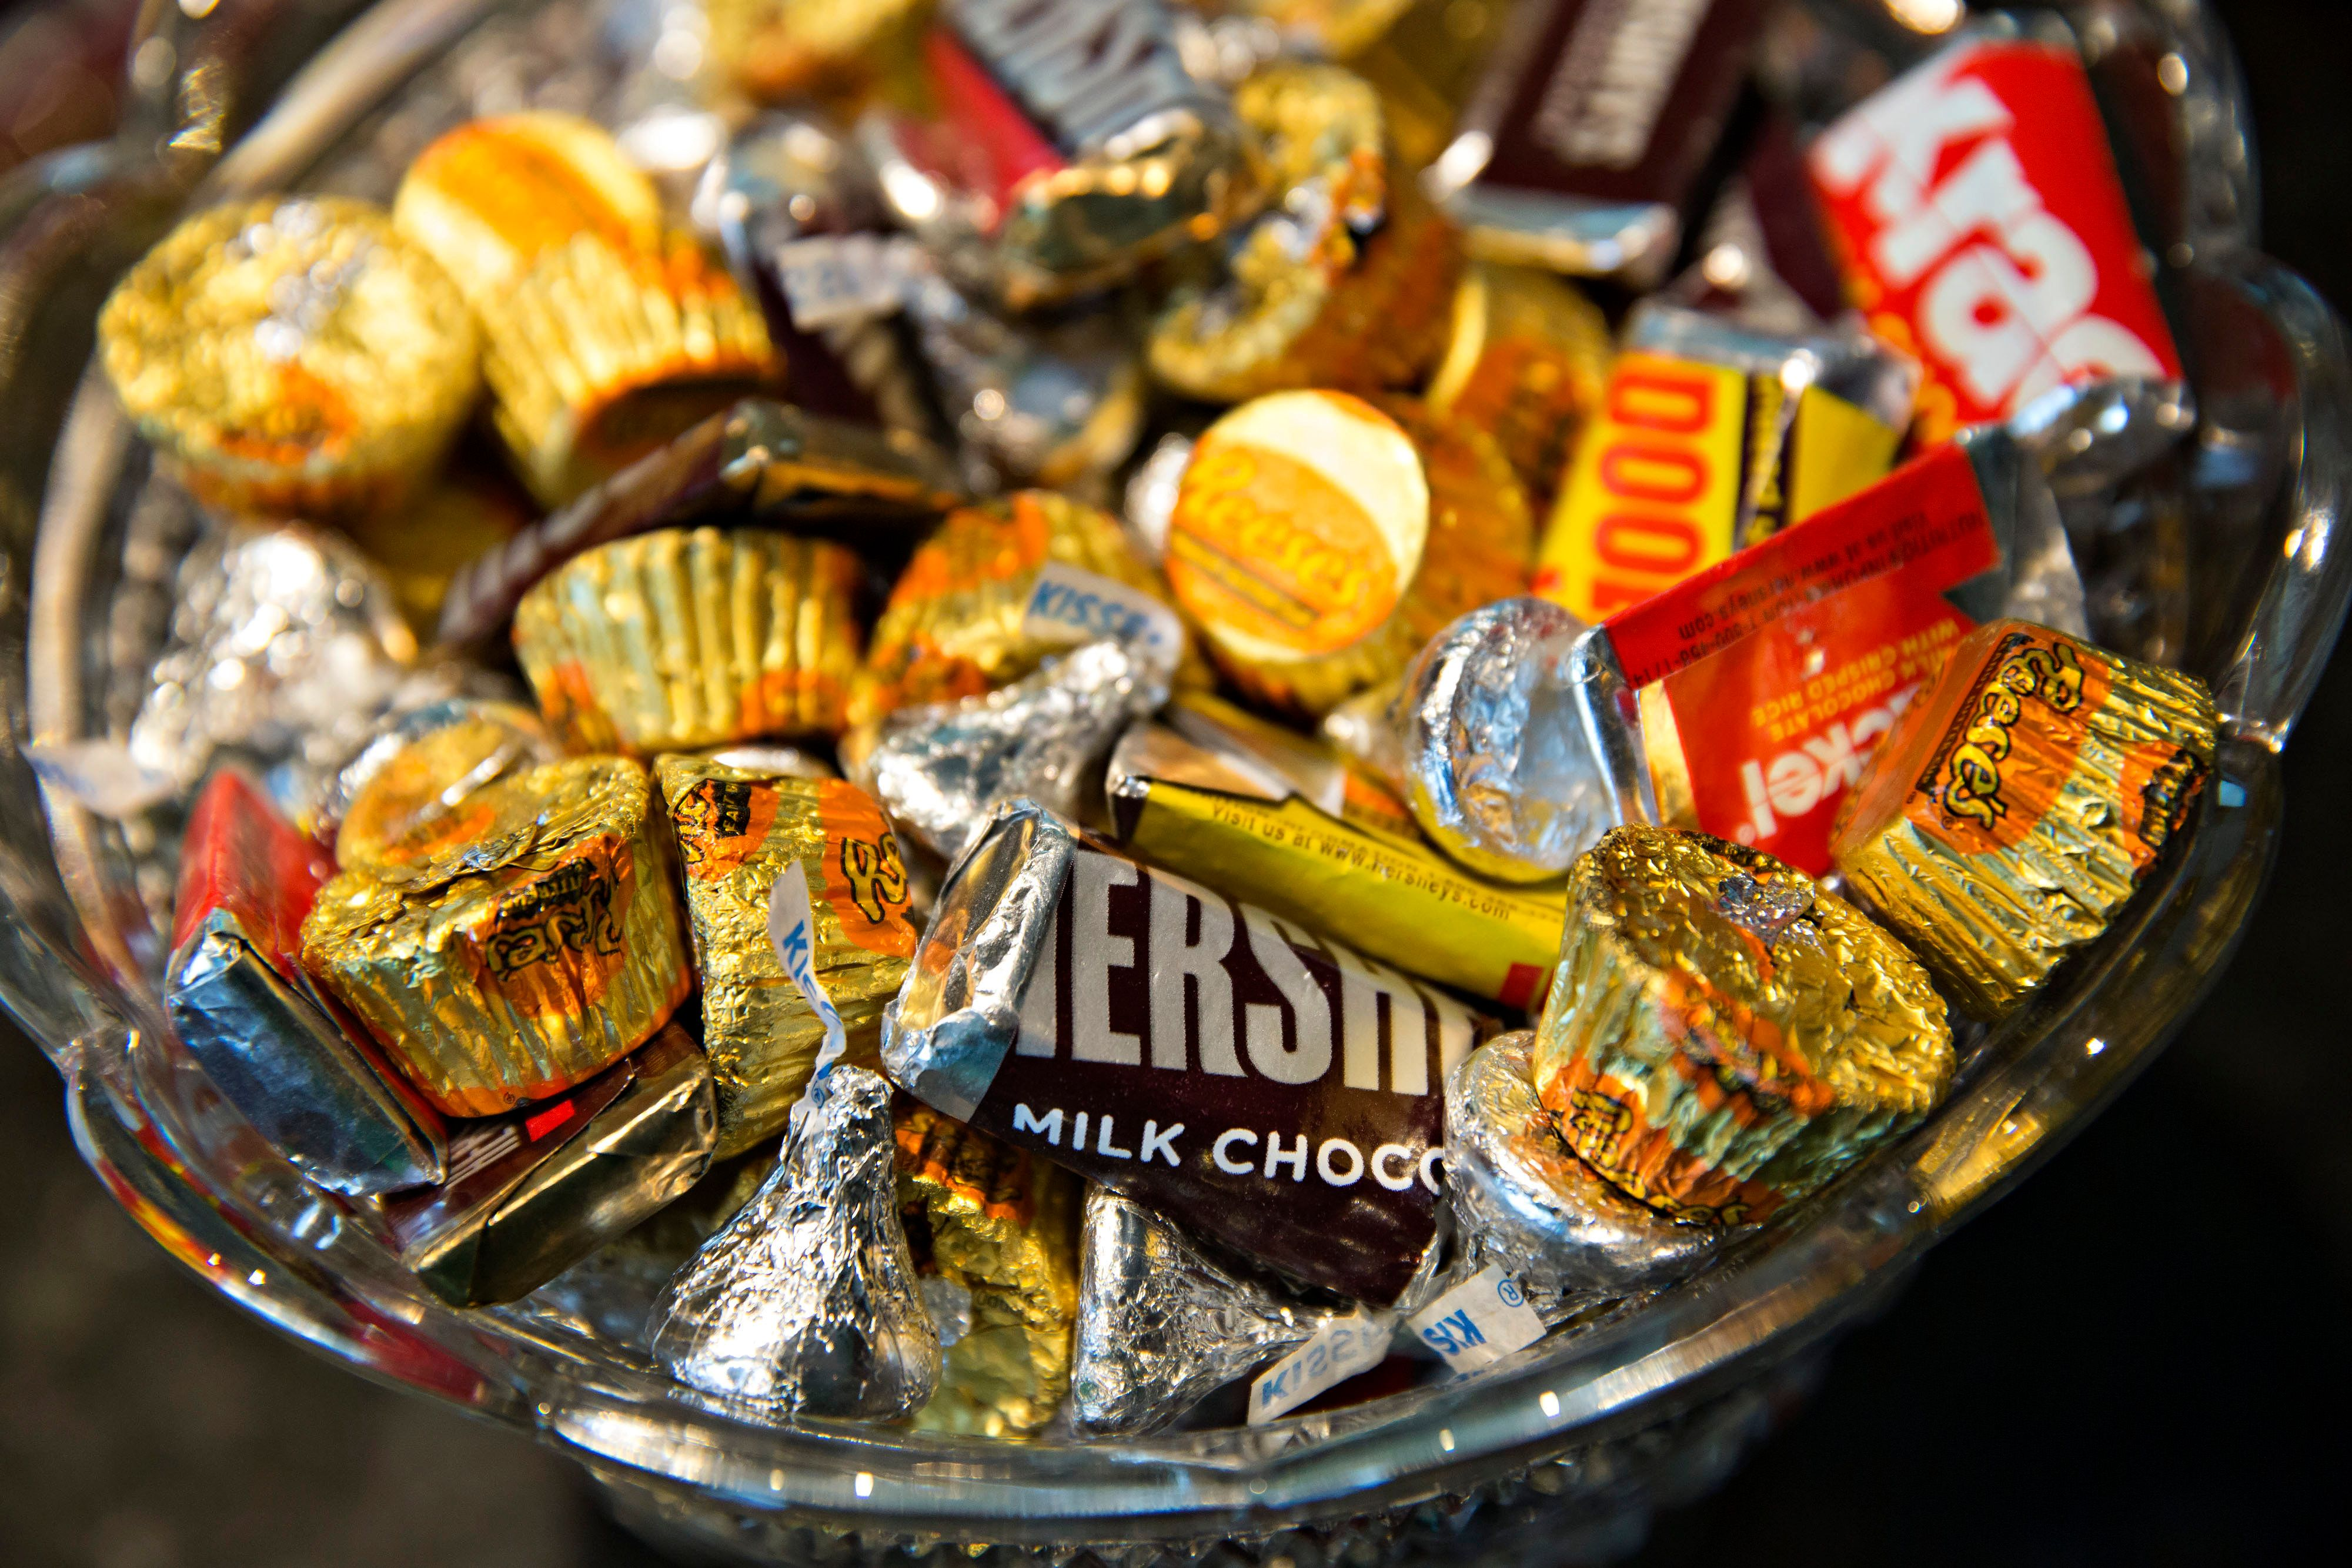 Various Hershey Co. chocolate candies are arranged for a photograph in a bowl in Tiskilwa, Illinois, U.S., on Tuesday, July 28, 2015. The Hershey Co. is scheduled to report second-quarter earnings on Friday, Aug. 7, 2015. Photographer:  Daniel Acker/Bloomberg via Getty Images